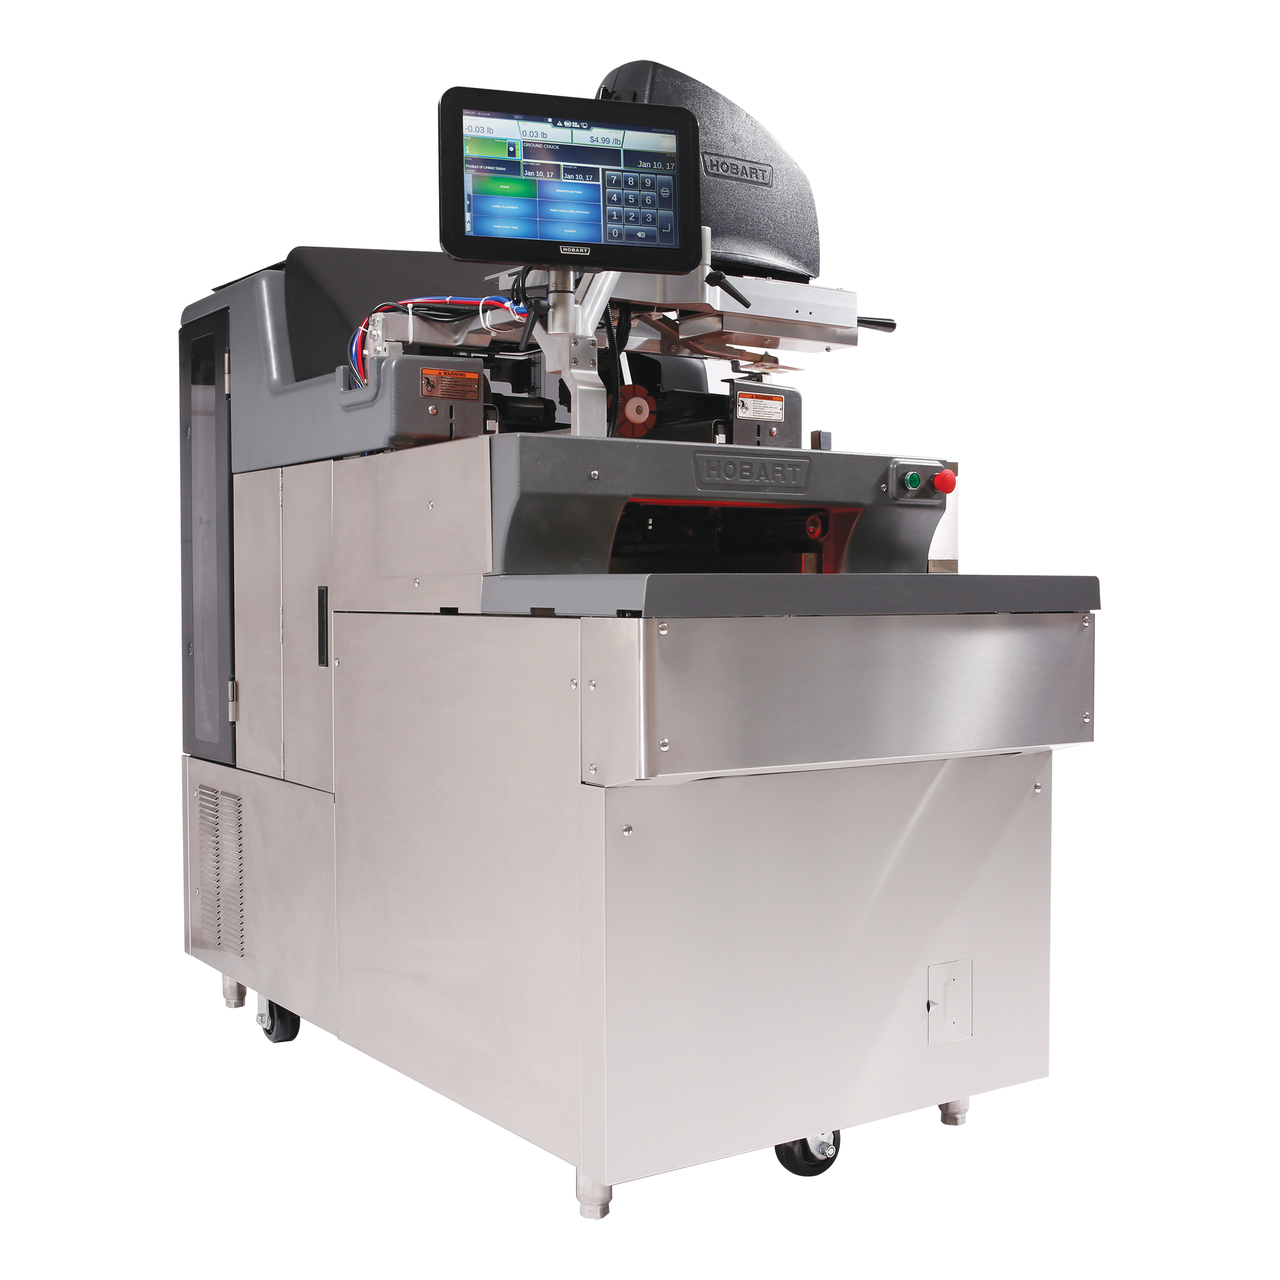 automatic wrapping systems auto wrap equipment hobart